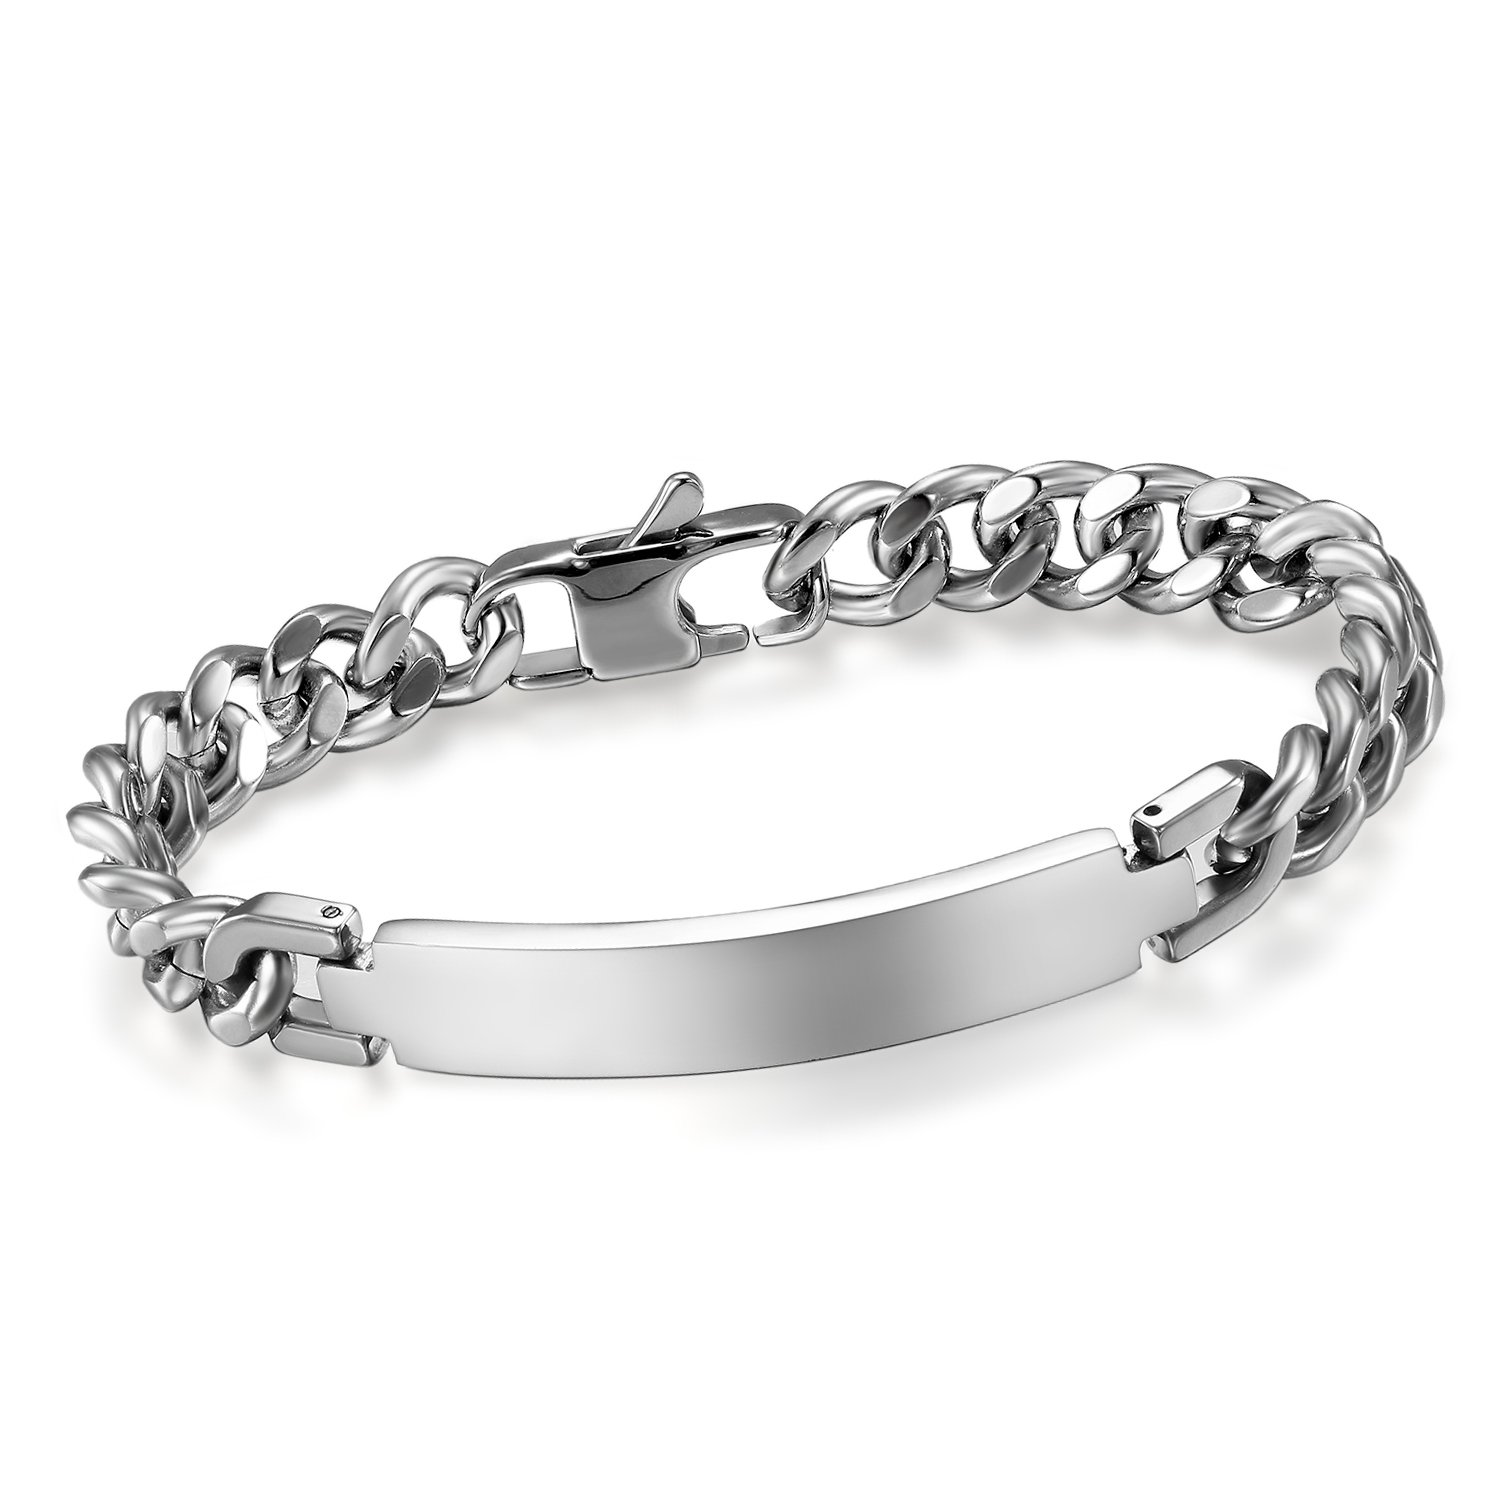 Cupimatch Men's 9MM Wide Stainless Steel ID Tag Bracelet Chain Link Wrist Bangle, 8.3 8.3 C006036